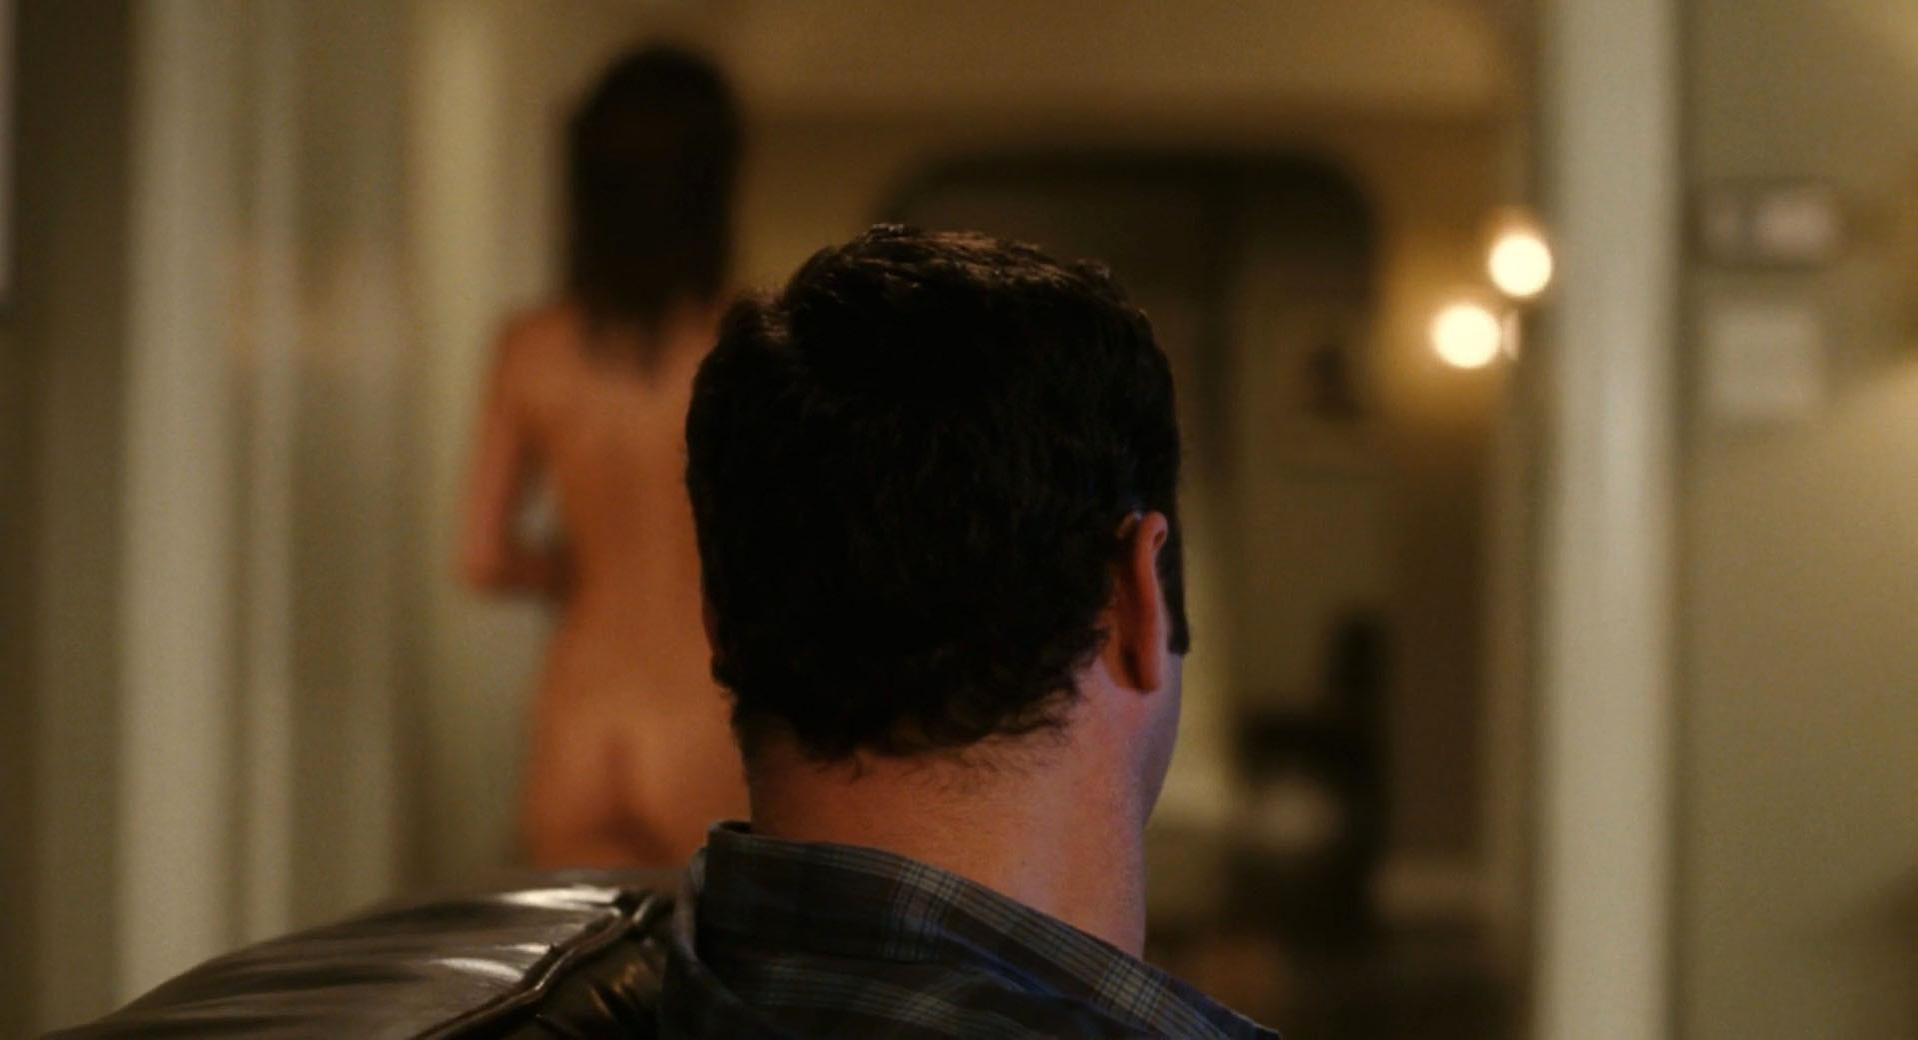 Seems jennifer aniston break up nude scene simply excellent